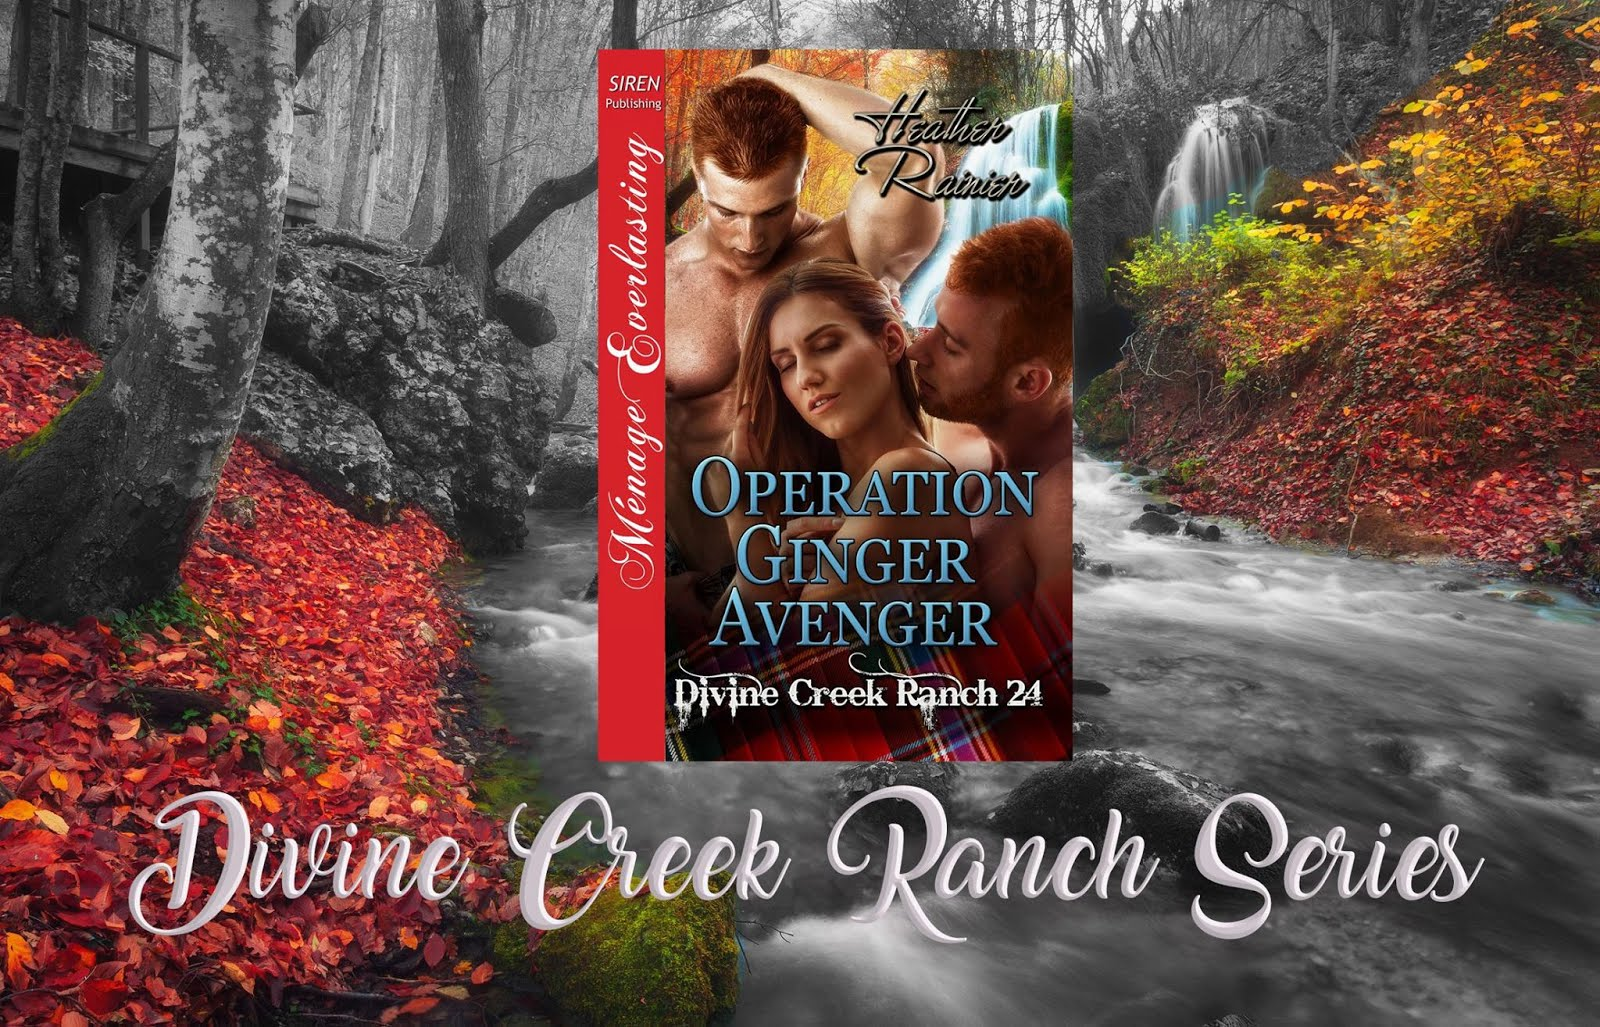 Operation Ginger Avenger by Heather Rainier